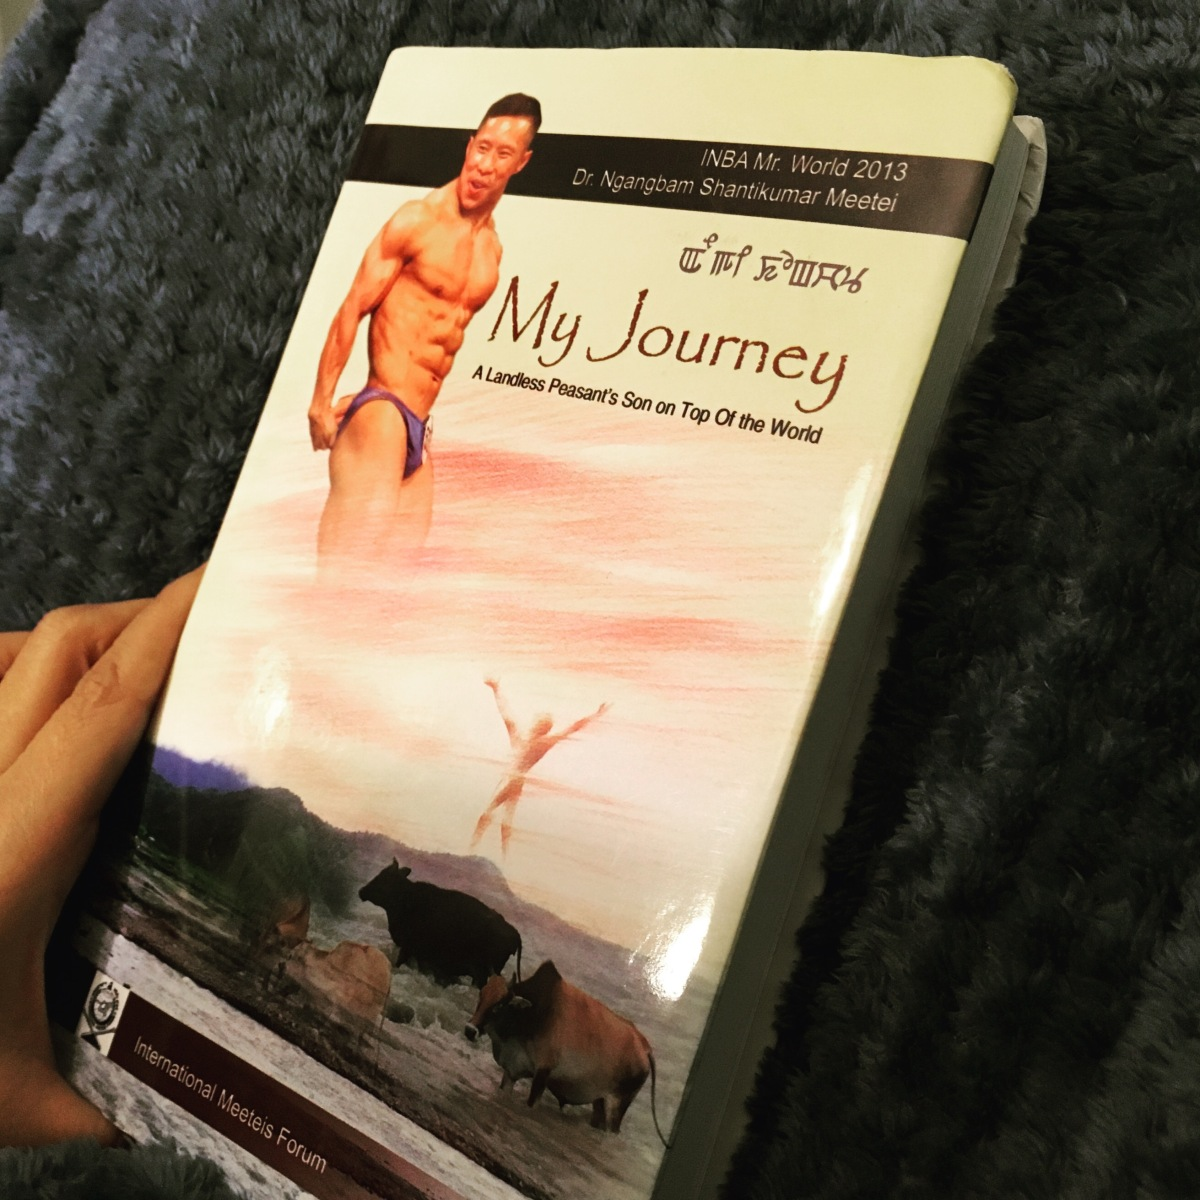 Book Review 001 : My Journey by Dr. Ngangbam Shantikumar Meetei